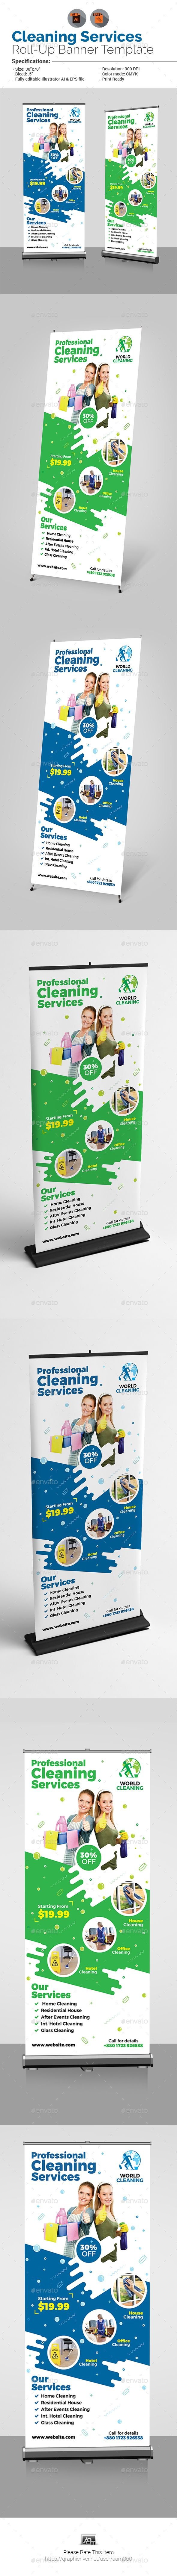 Cleaning Service Roll Up Cleaning Services Cleaning Service And